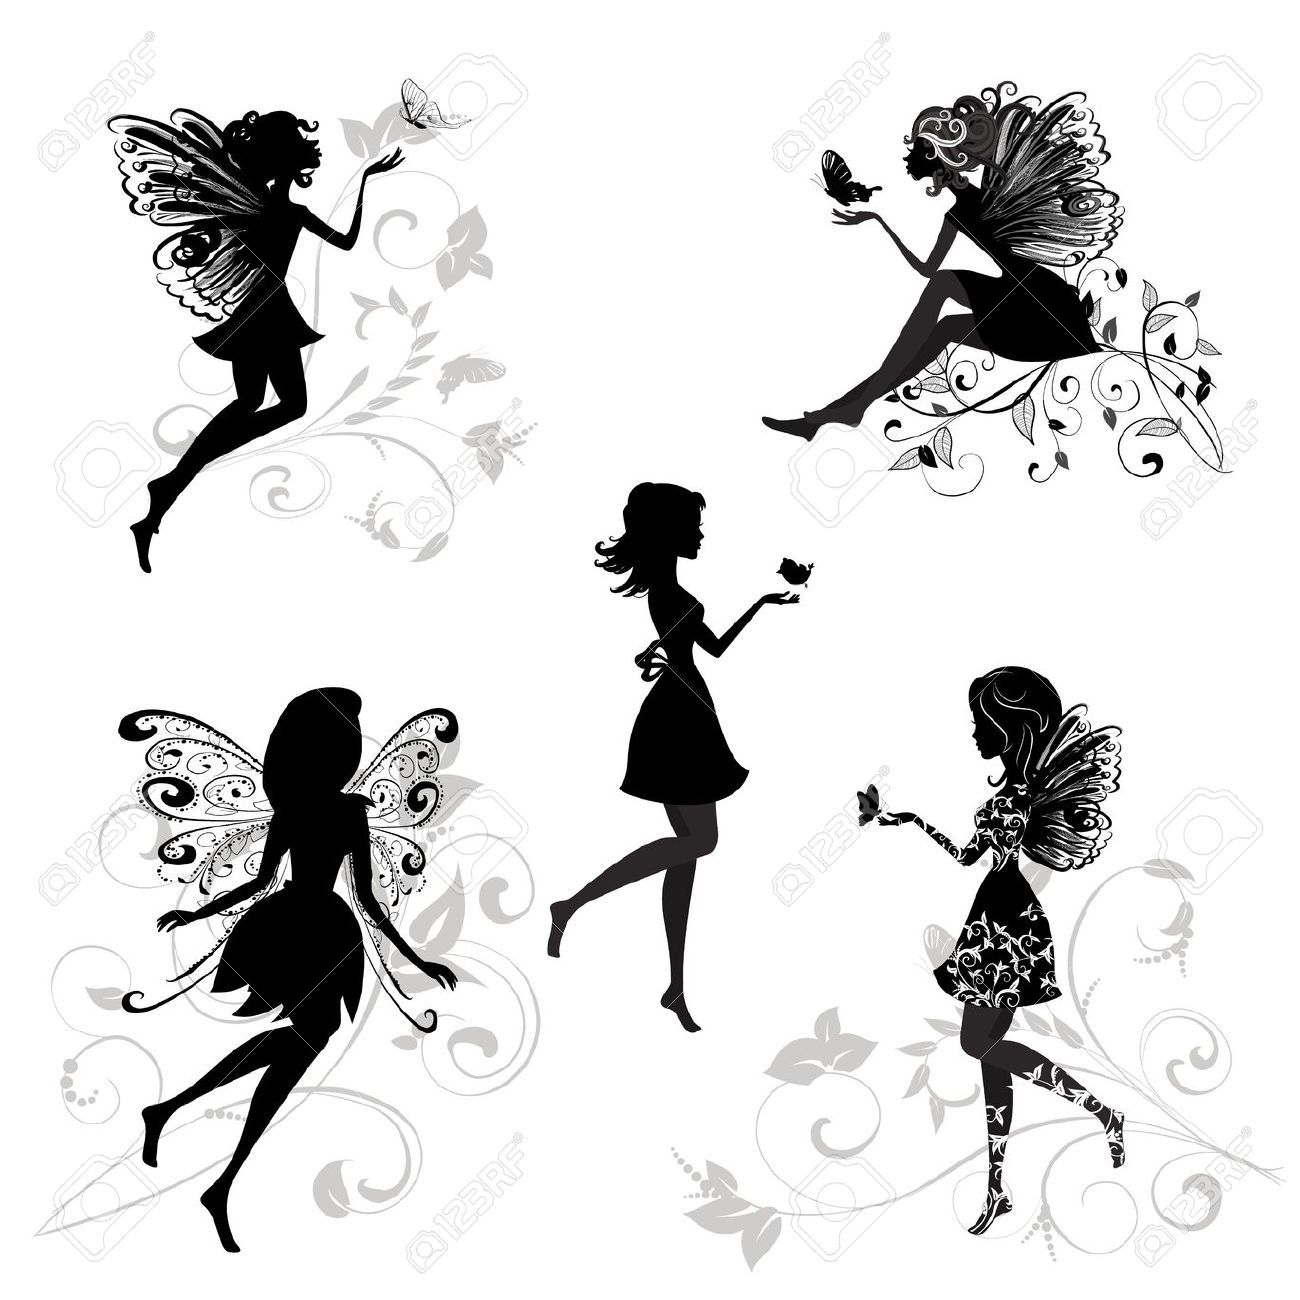 fairy clipart, fairy photos images royalty fairy images and #31451